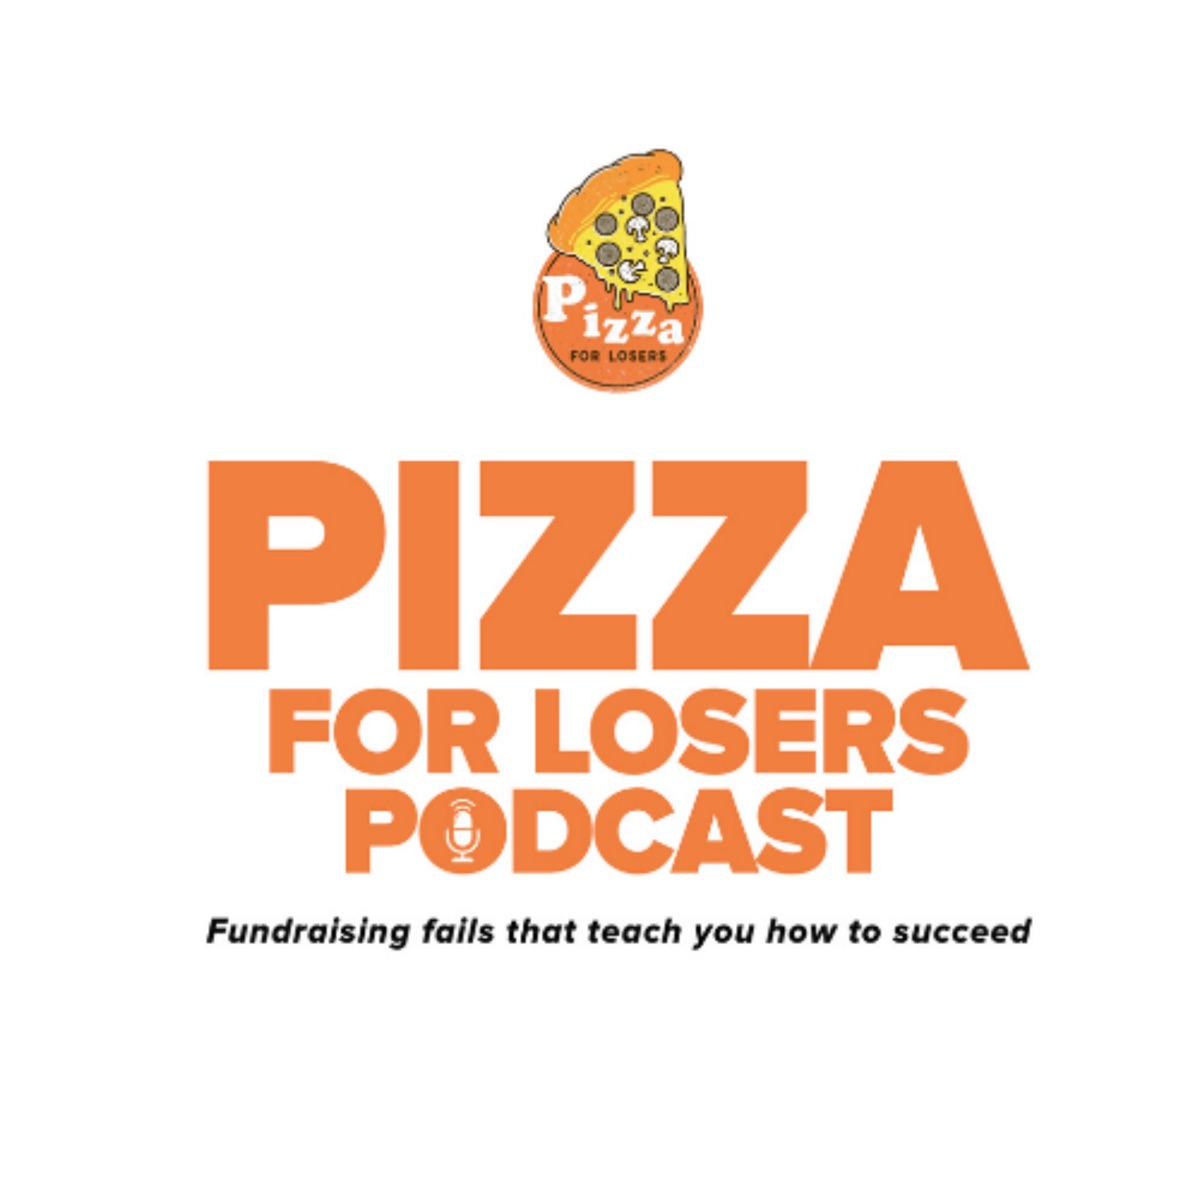 The Pizza for Losers Podcast